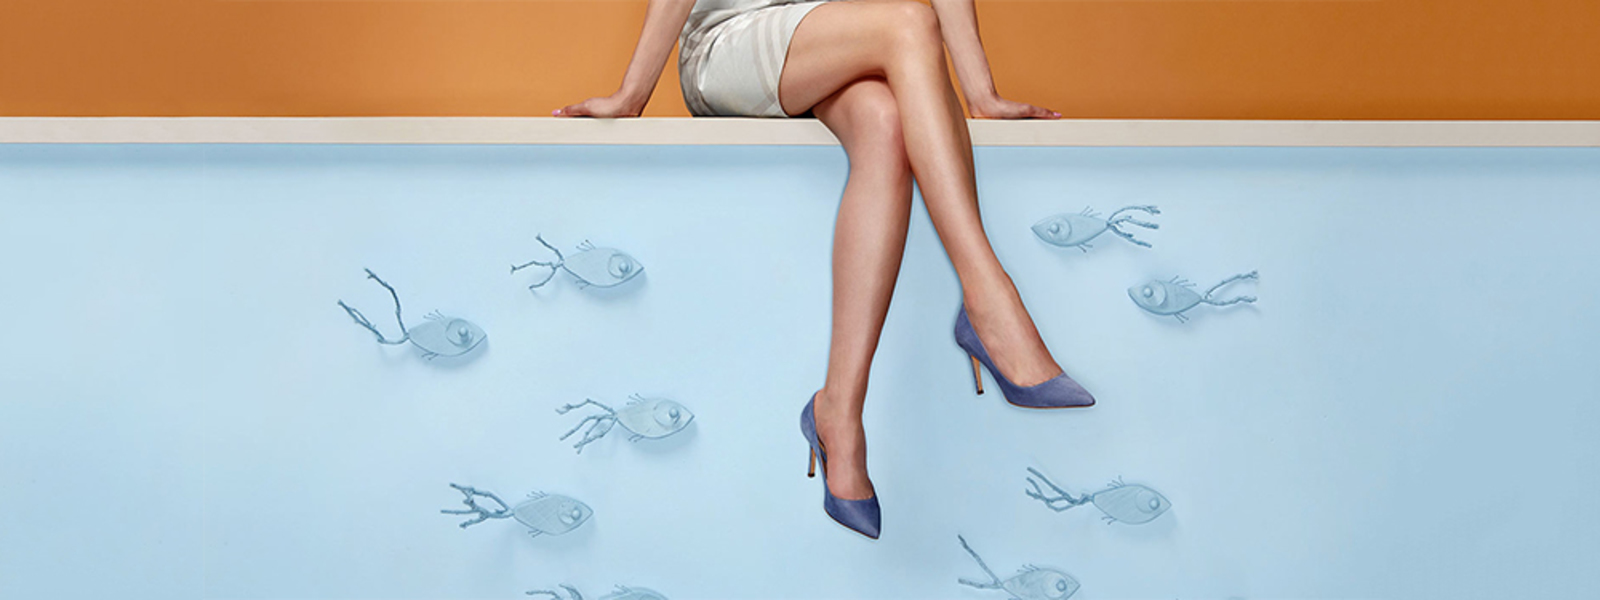 adv campaign of the shoe company Sante Borella